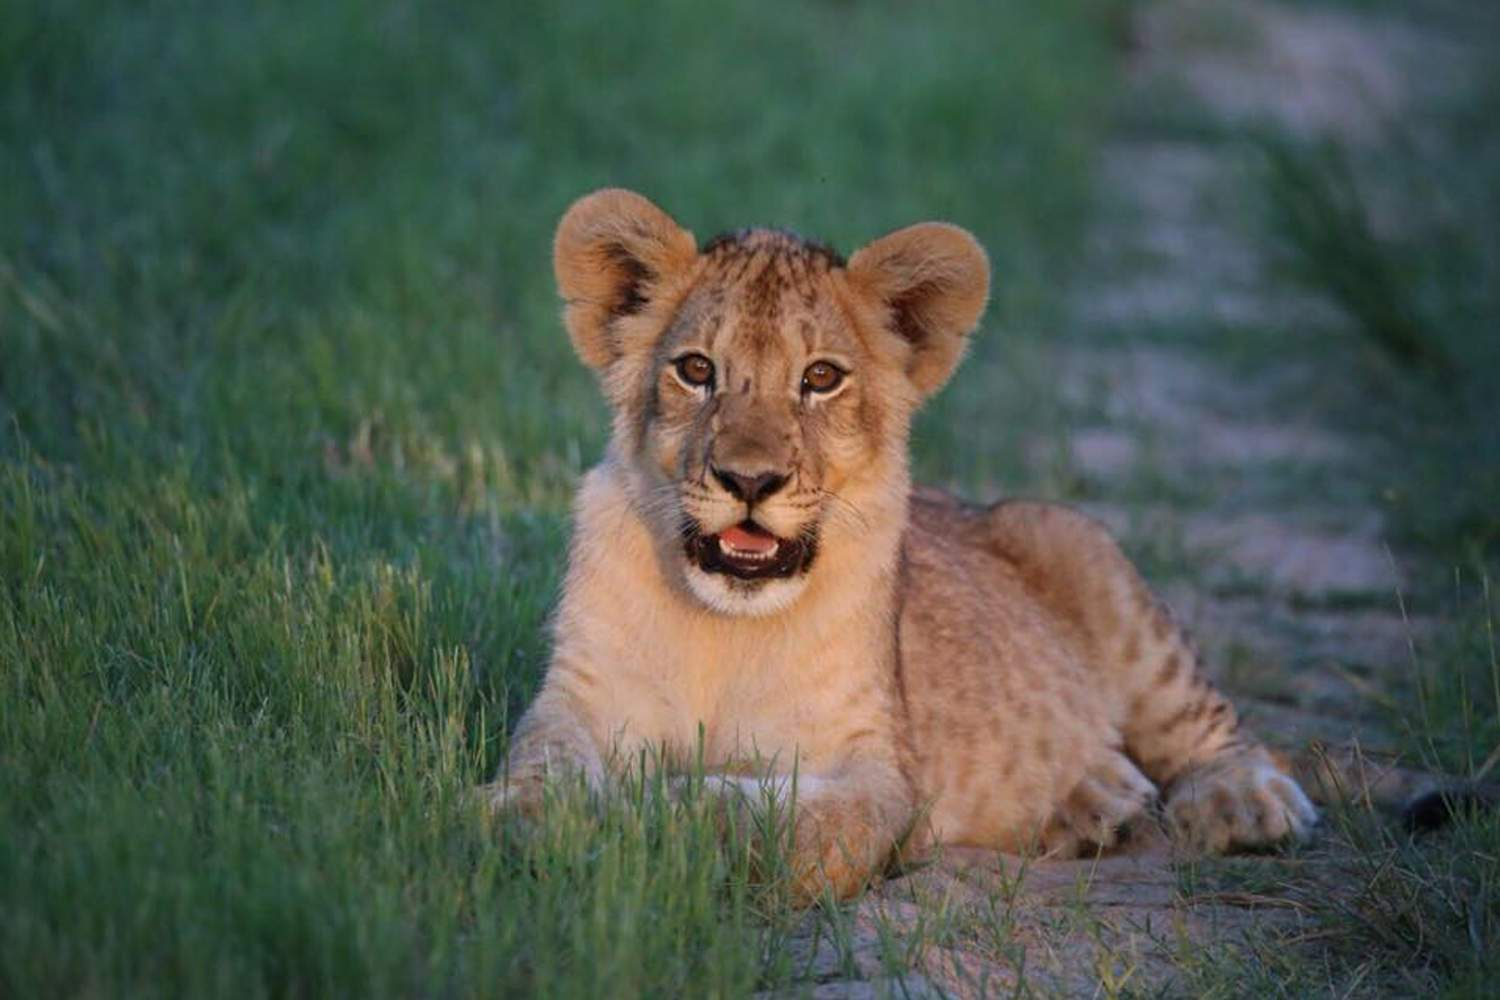 Lion cub sitting in green grass at sunset, staring at the camera